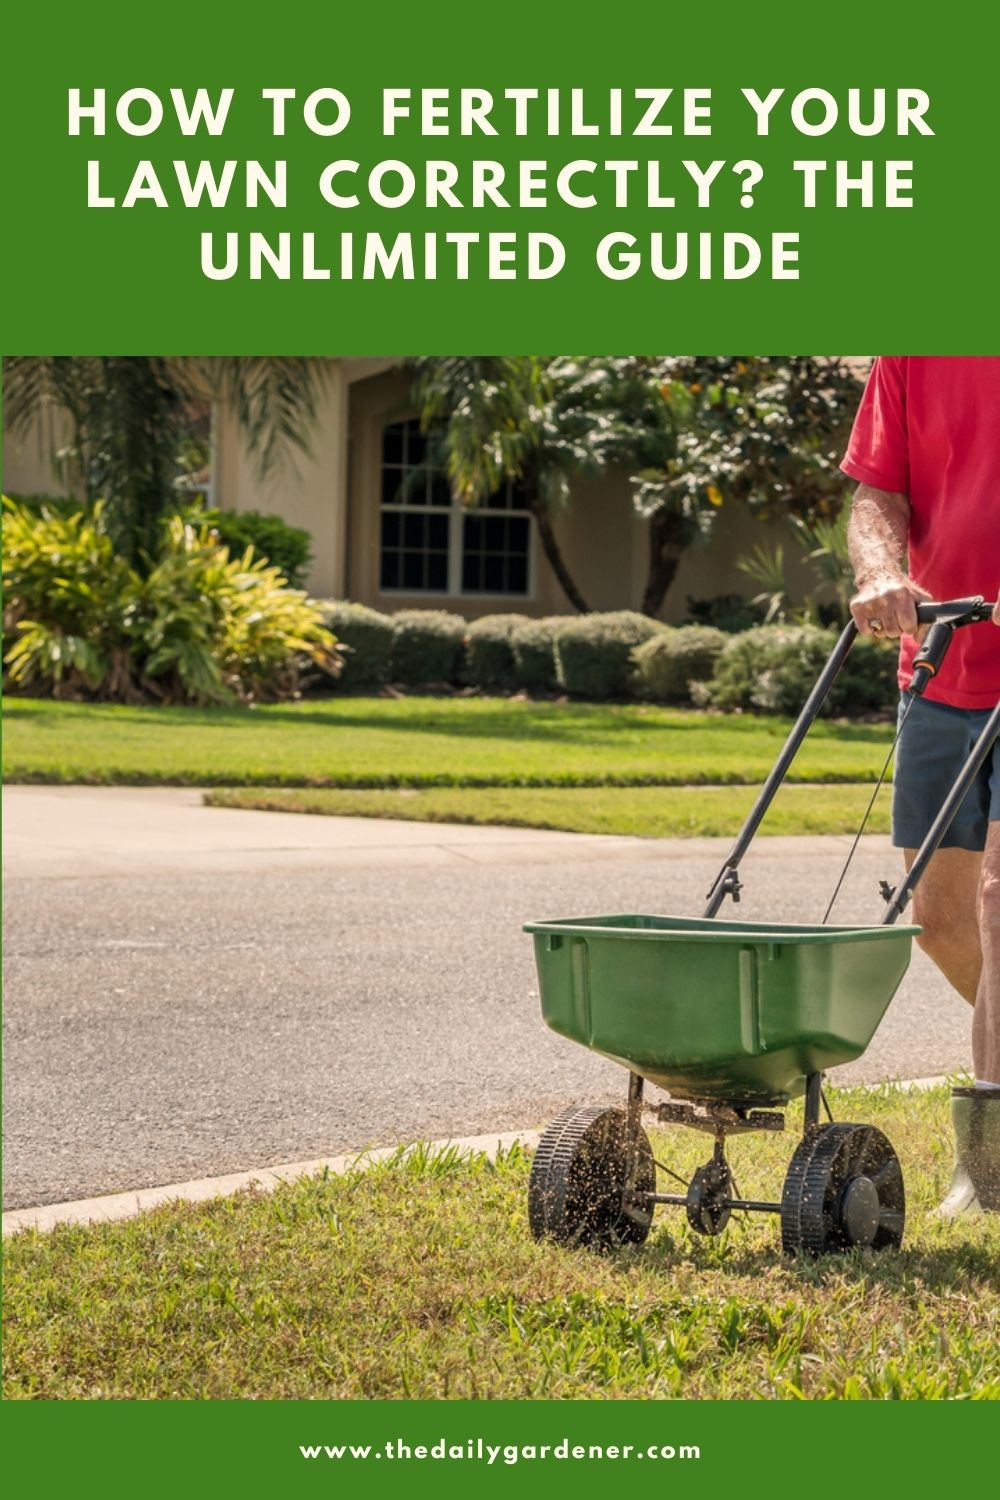 How to Fertilize Your Lawn Correctly The Unlimited Guide 1